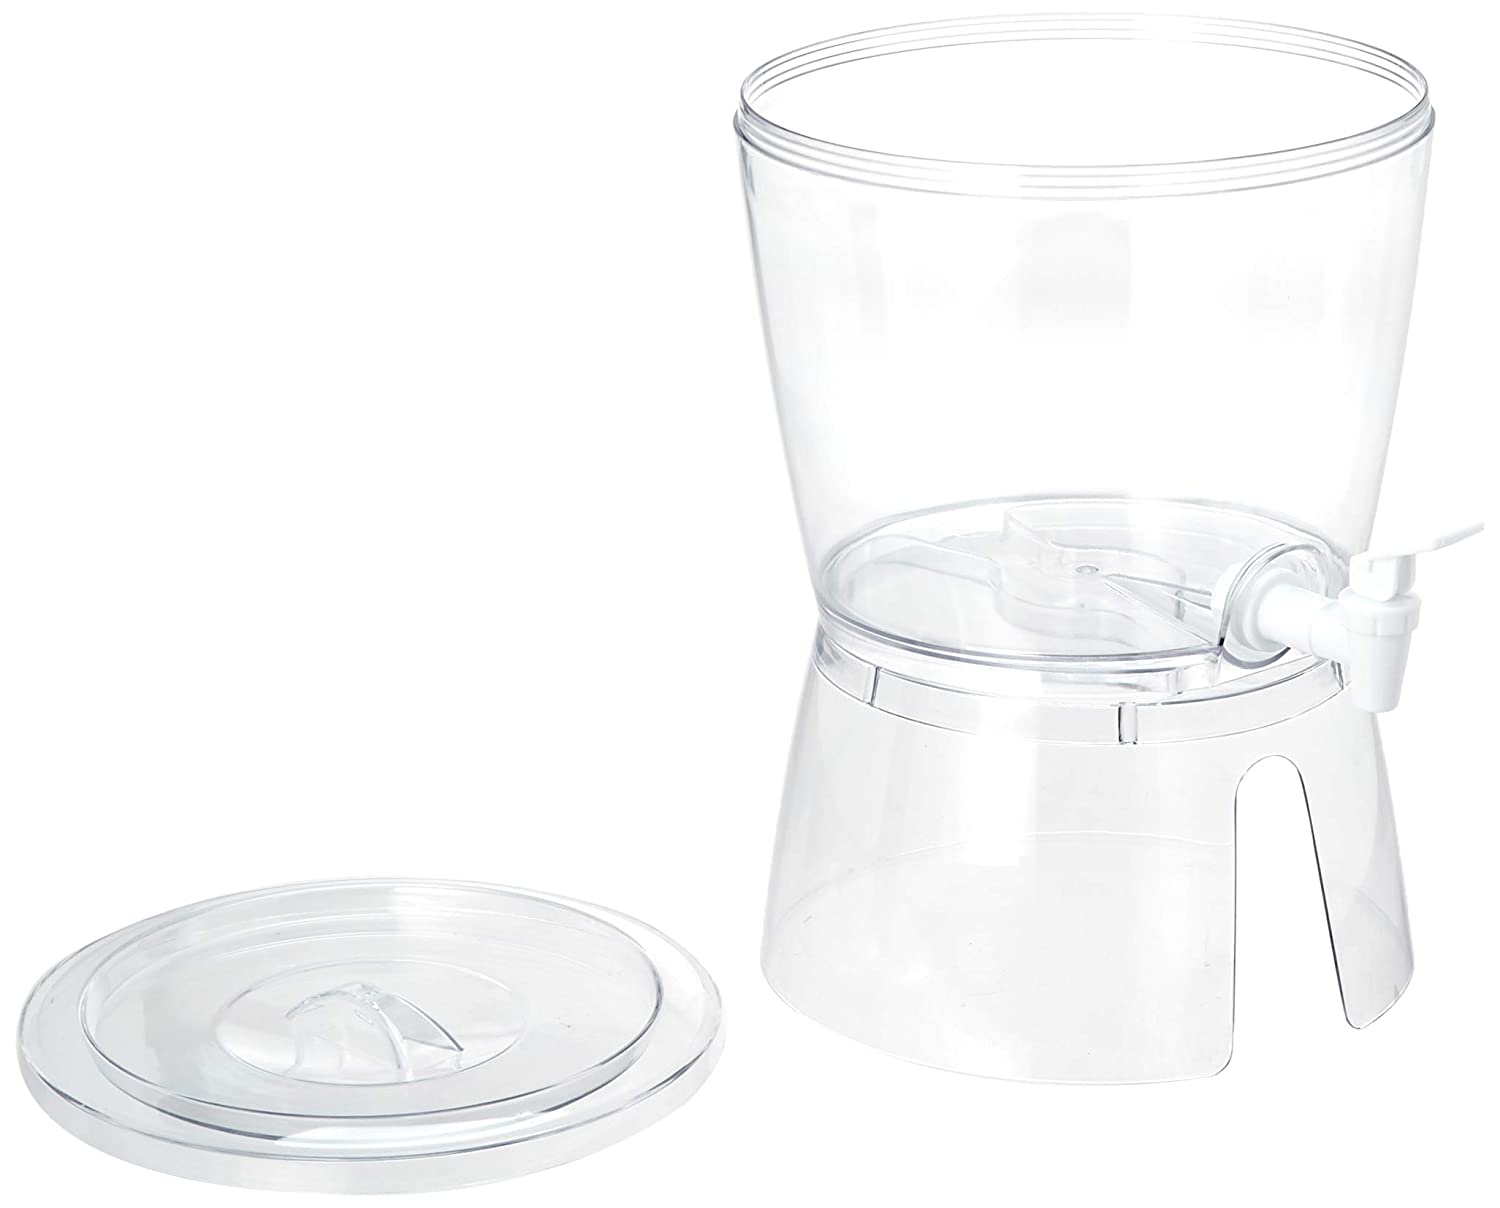 2.8 Gallon Quickway Imports QI003267 Set of 2 Stackable Juice and Water Beverage Dispensers with Stand